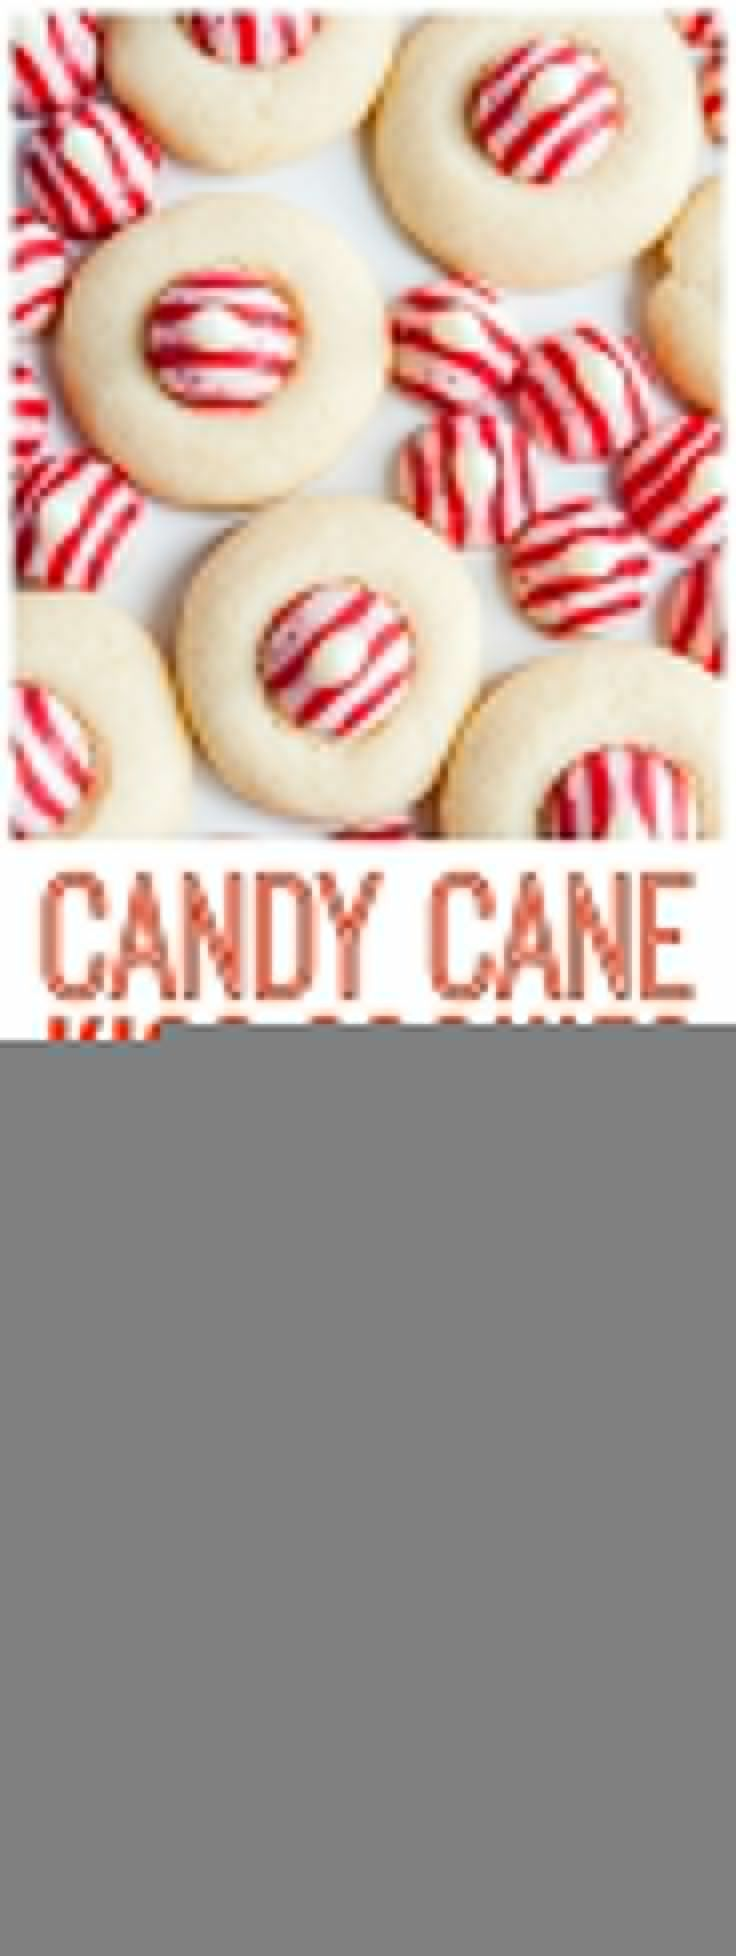 Candy Cane Kiss Cookies Recipe - Hot Beauty Health,Baking #Beauty #Candy #Cane #..., #BEAUTY #candy #cane #Cookies #HealthBaking #Hot #Kiss #Recipe